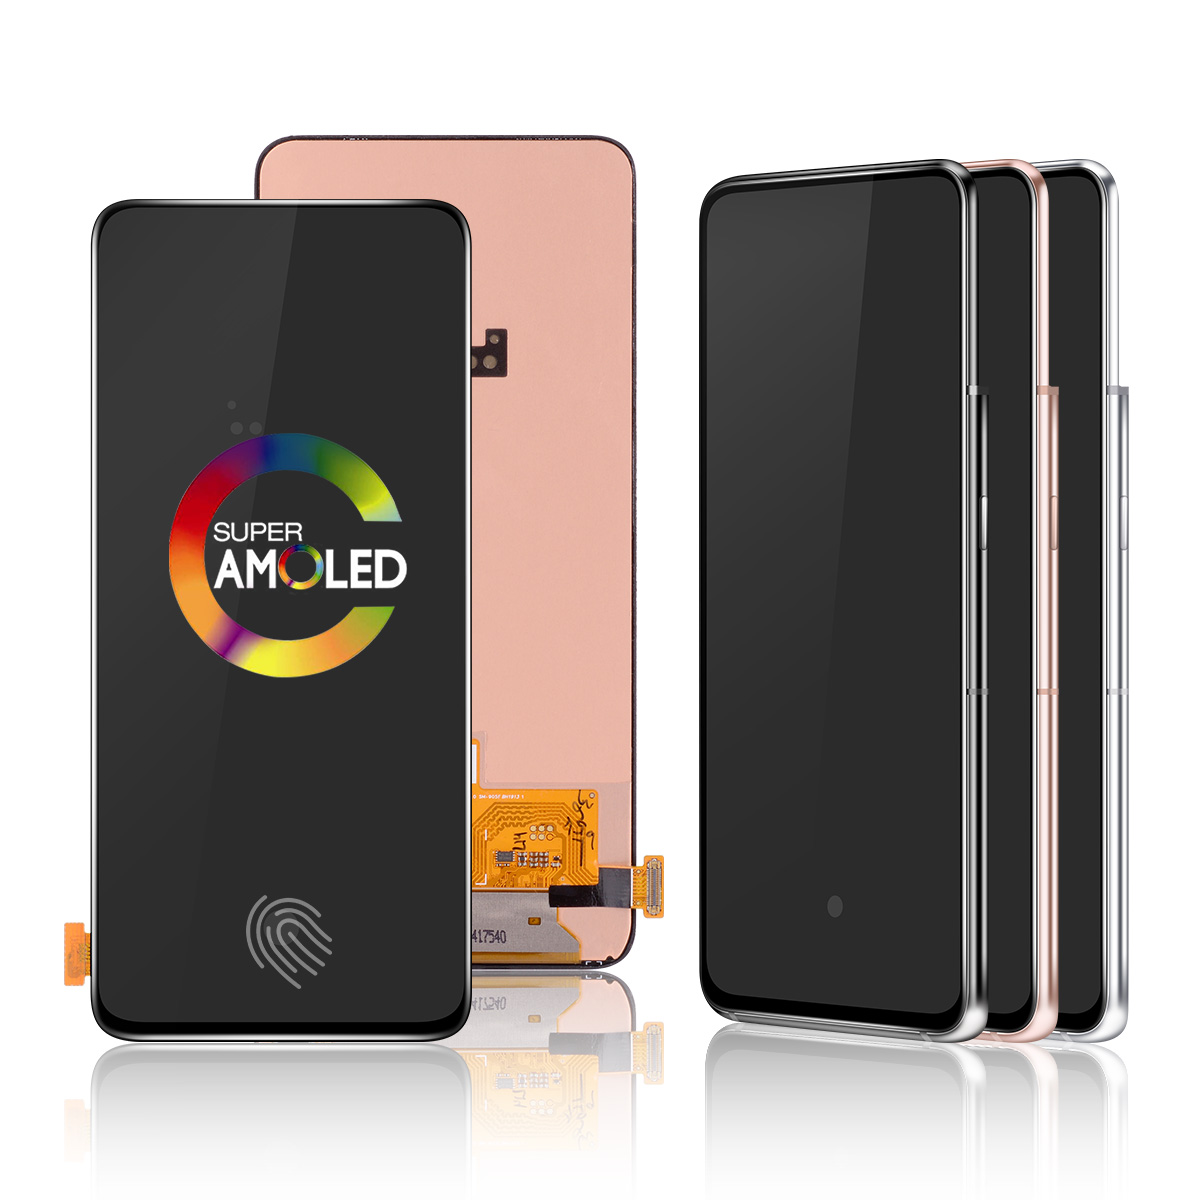 AMOLED <font><b>LCD</b></font> for <font><b>Samsung</b></font> <font><b>Galaxy</b></font> <font><b>A80</b></font> <font><b>LCD</b></font> Touch Screen Digitizer Assembly <font><b>LCD</b></font> for <font><b>Galaxy</b></font> A90 A805 SM-A805F / DS A905F SM-A90 image